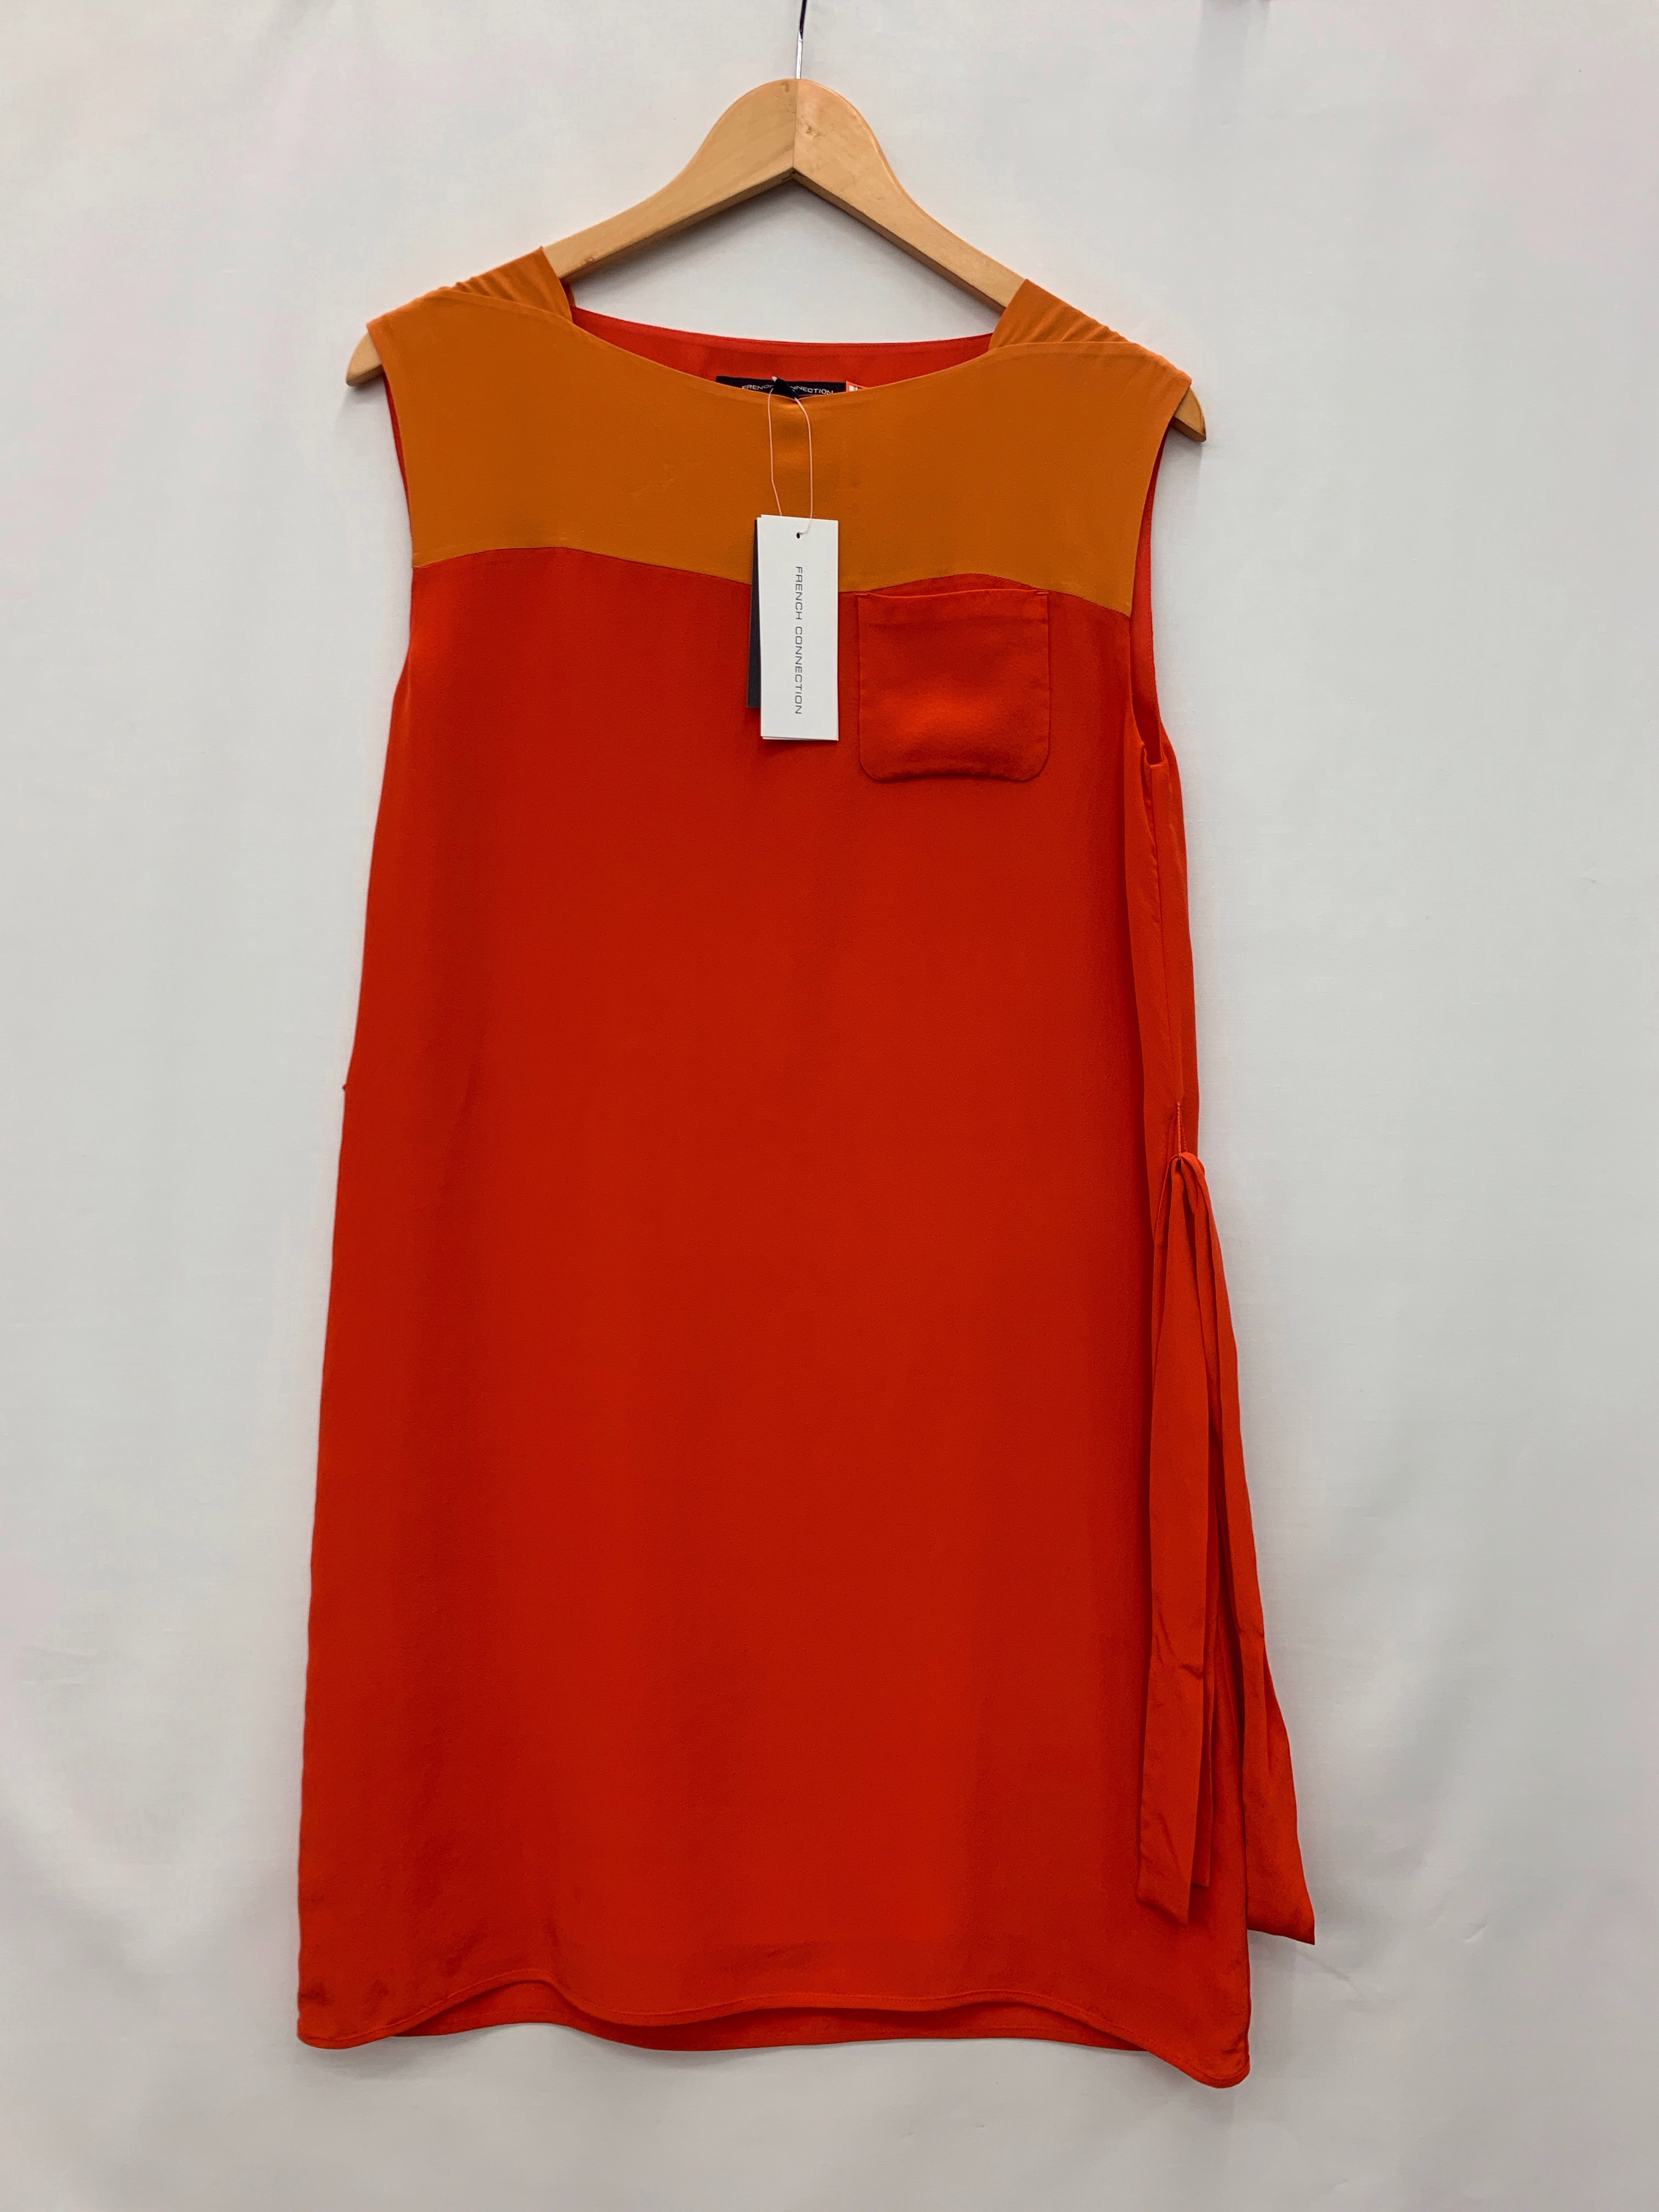 Size-4-FRENCH-CONNECTION-Silk-Dress_1037105A.jpg